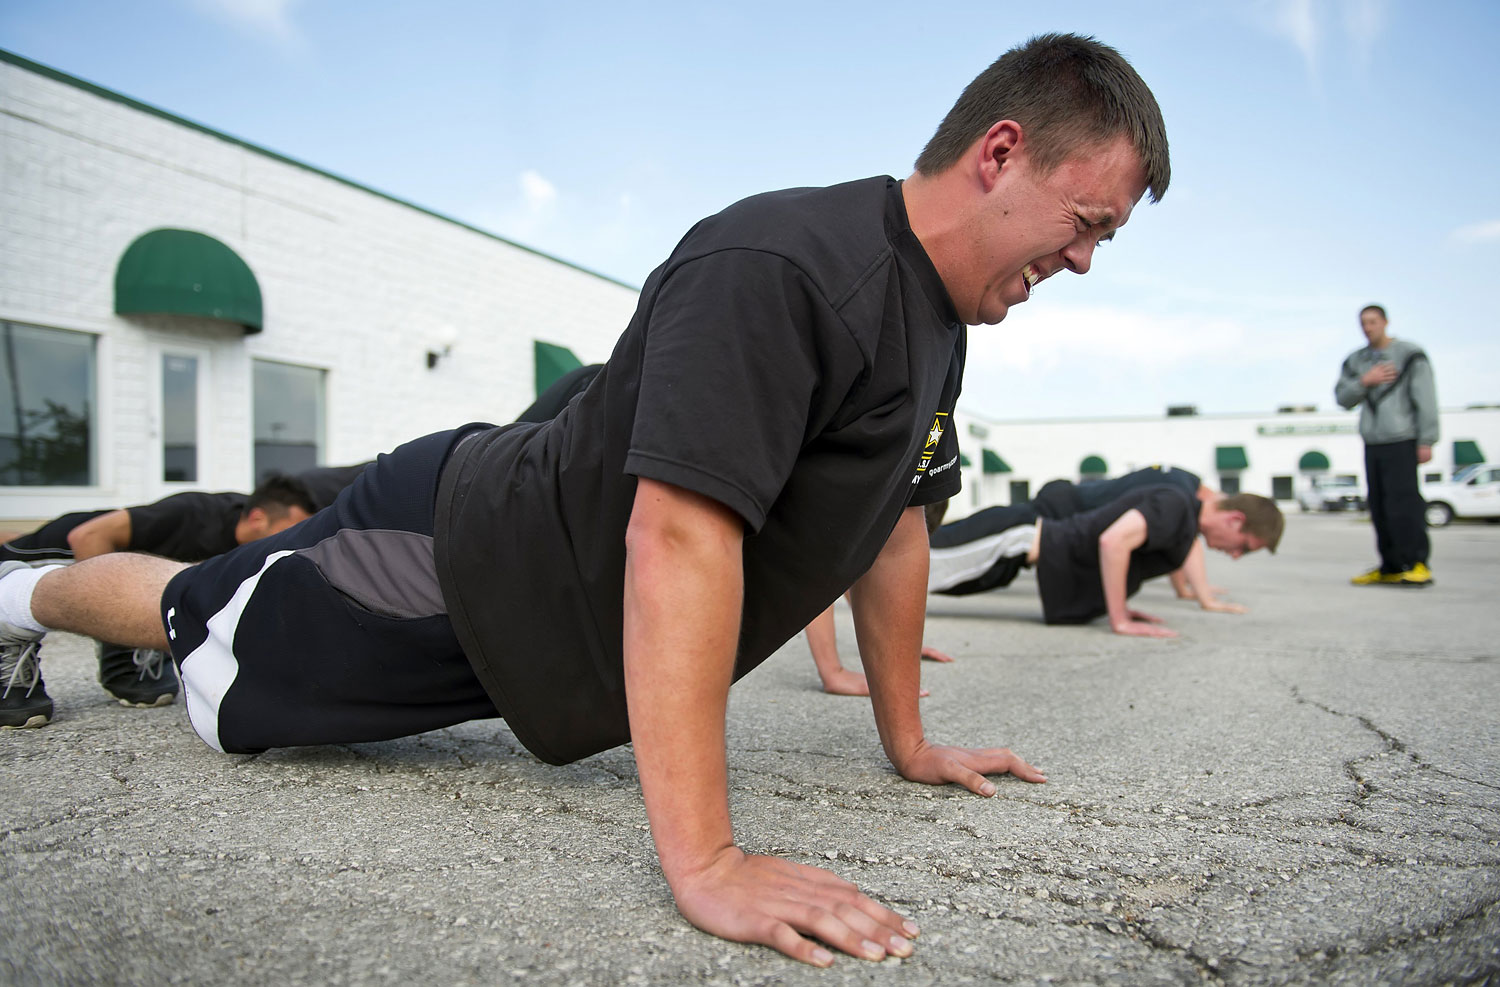 Kyle Bayard, 20, struggles to remain in position during a stationary push-up during physical exercise in the parking lot behind the Army recruiting station in Grandview, Mo., May 6, 2014.